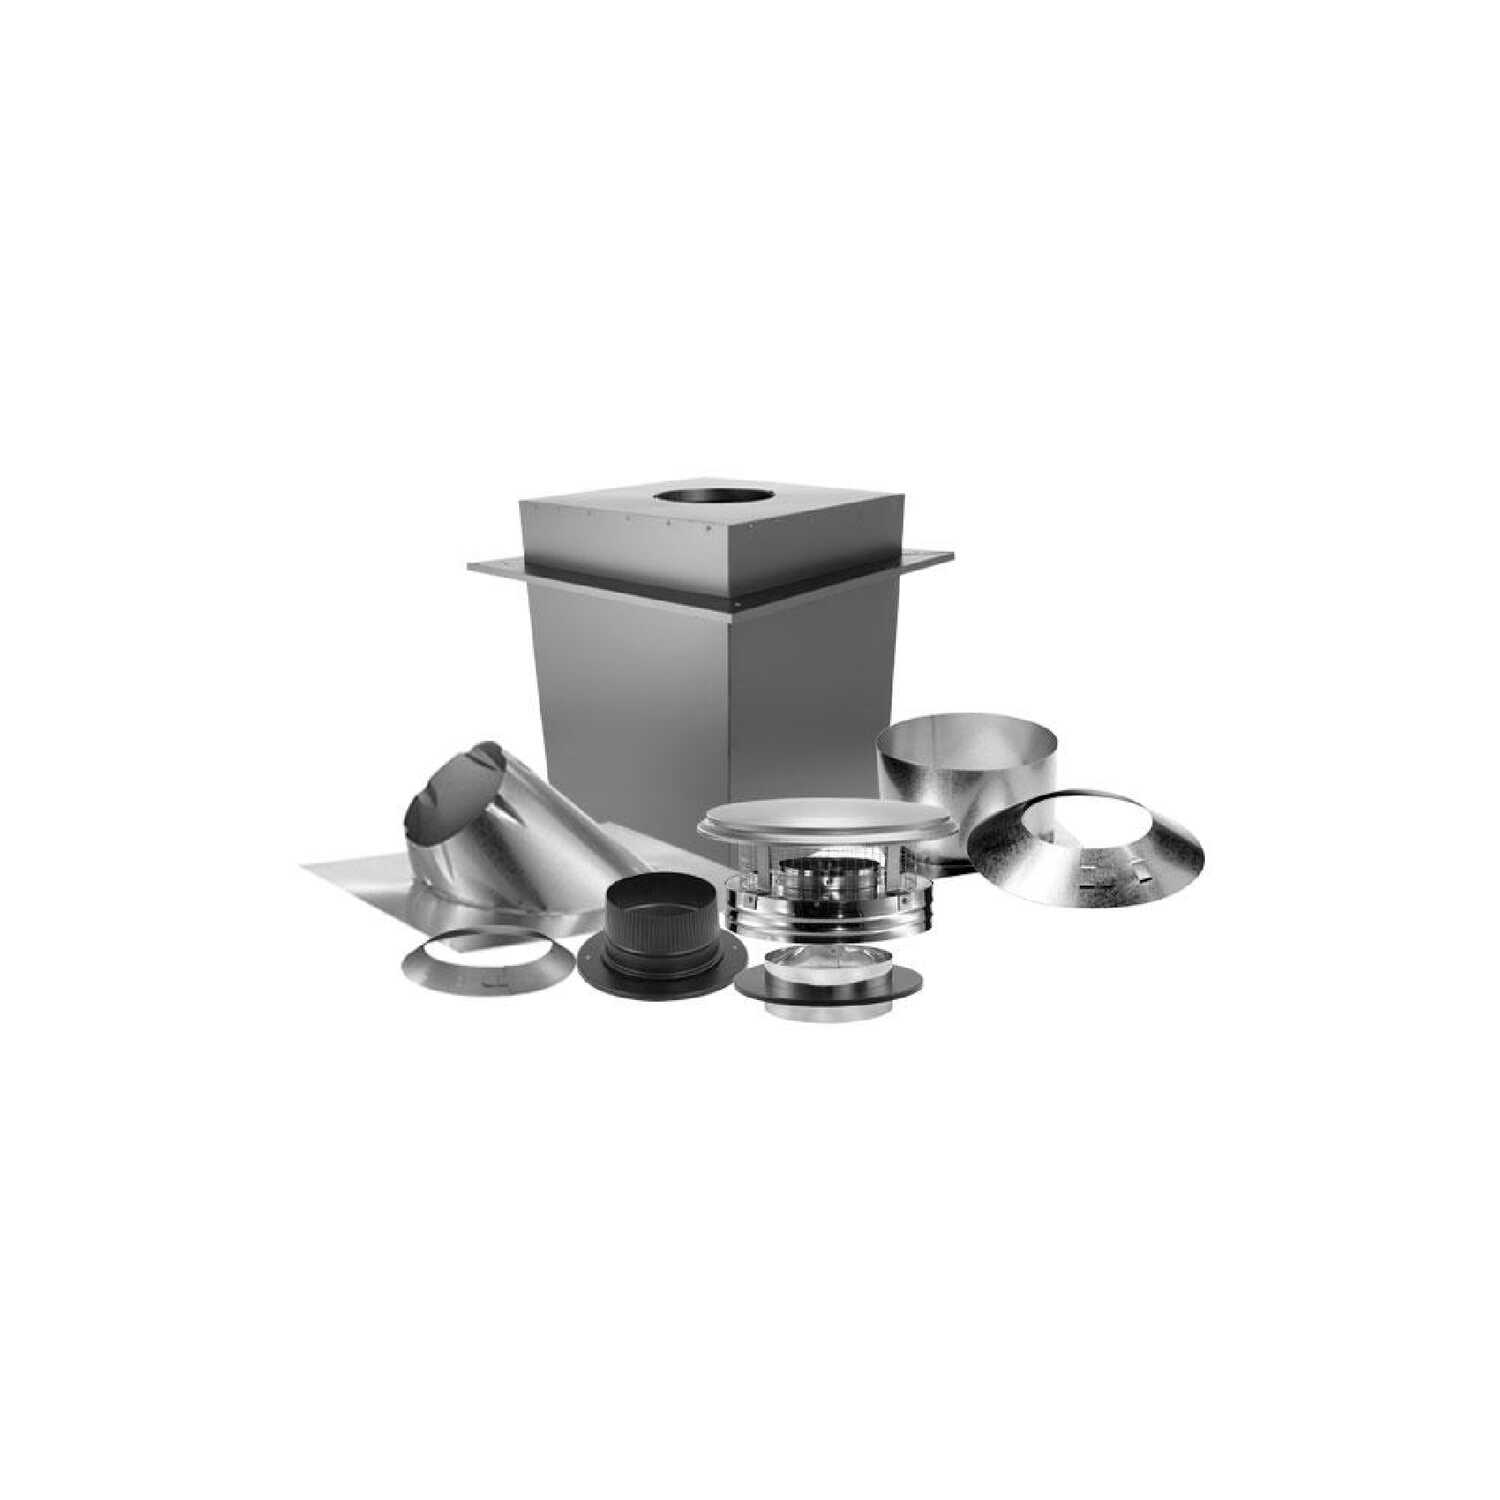 DuraVent  DuraPlus  6 in. Stainless Steel  Stove Pipe Ceiling Support Kit